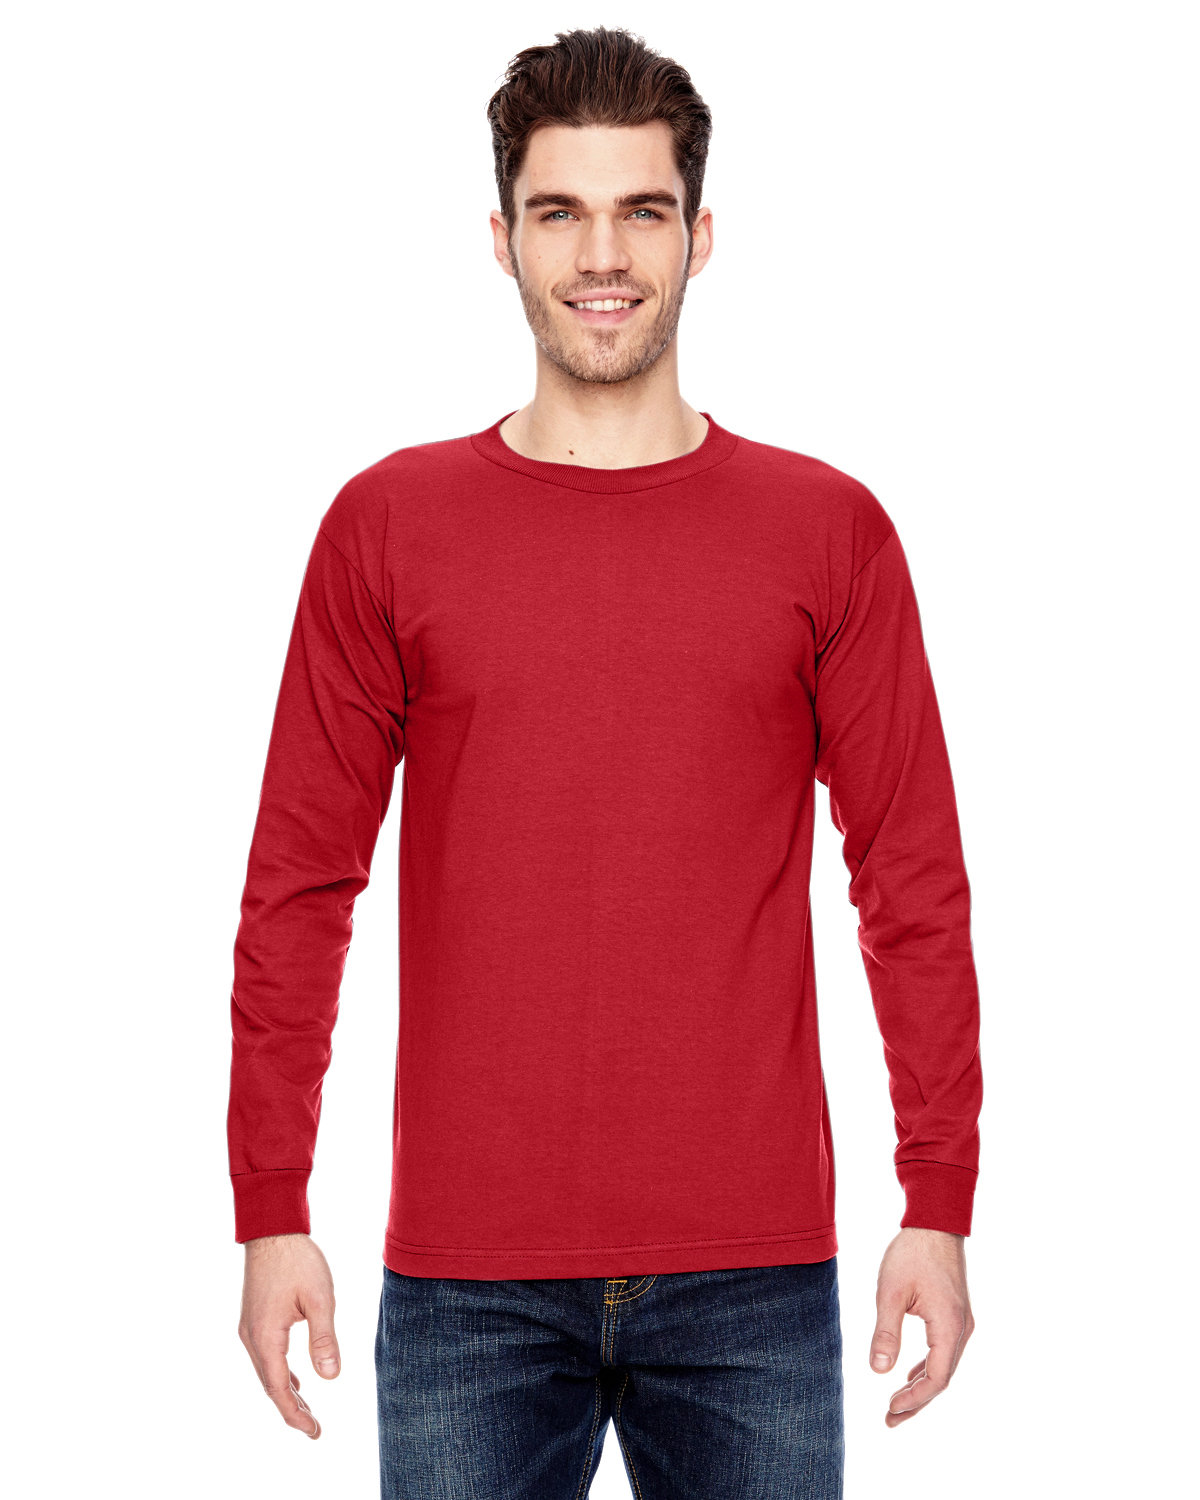 Bayside Adult 6.1 oz., 100% Cotton Long Sleeve T-Shirt RED